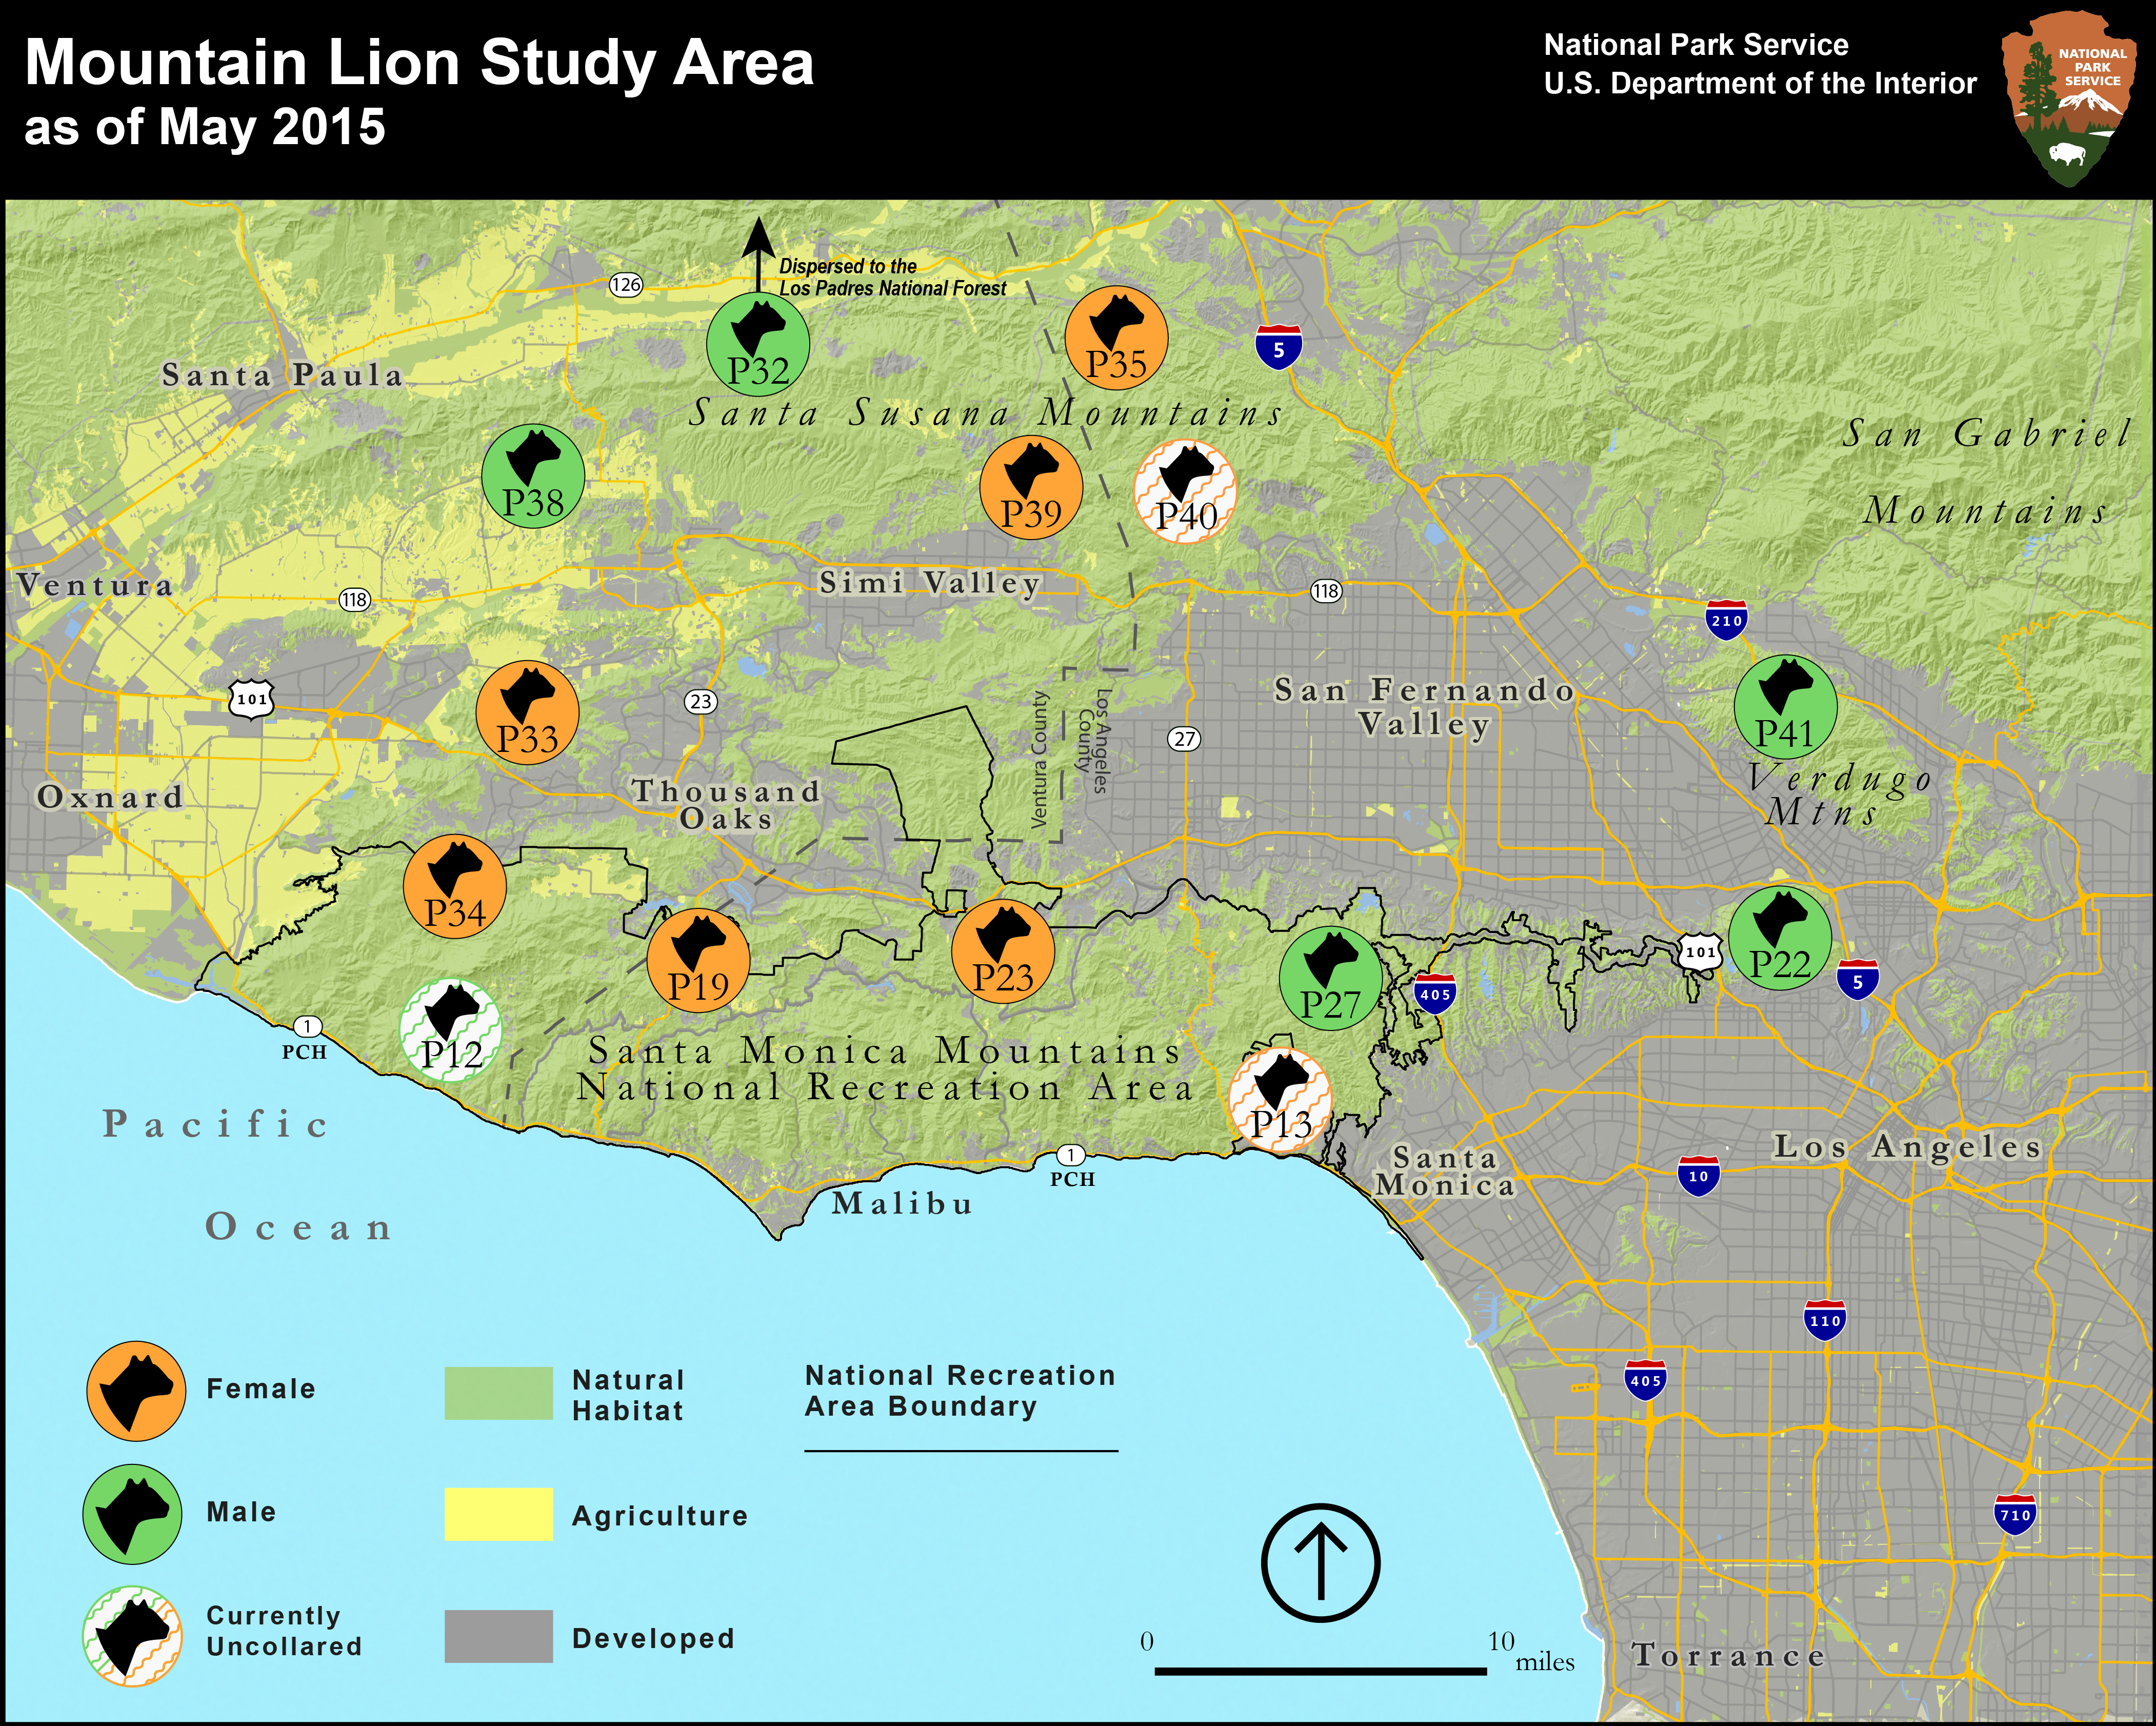 National Park Service Begins Tracking Mountain Lions in the Verdugo ...